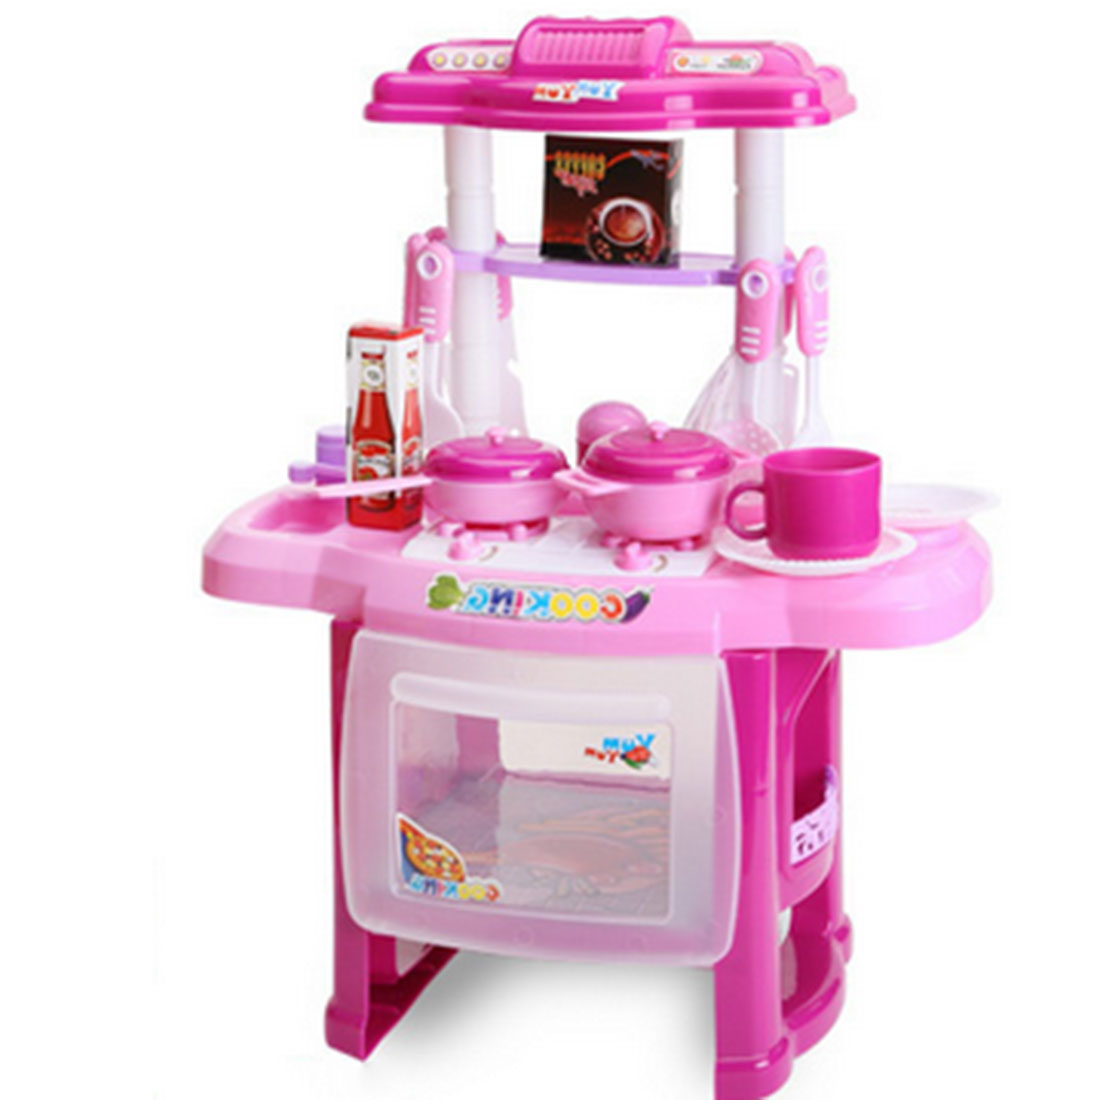 Children Kitchen Pretend Playing Toys Cooking Play Sets With Musical Lights Baby Kids Home Educational Toy... by